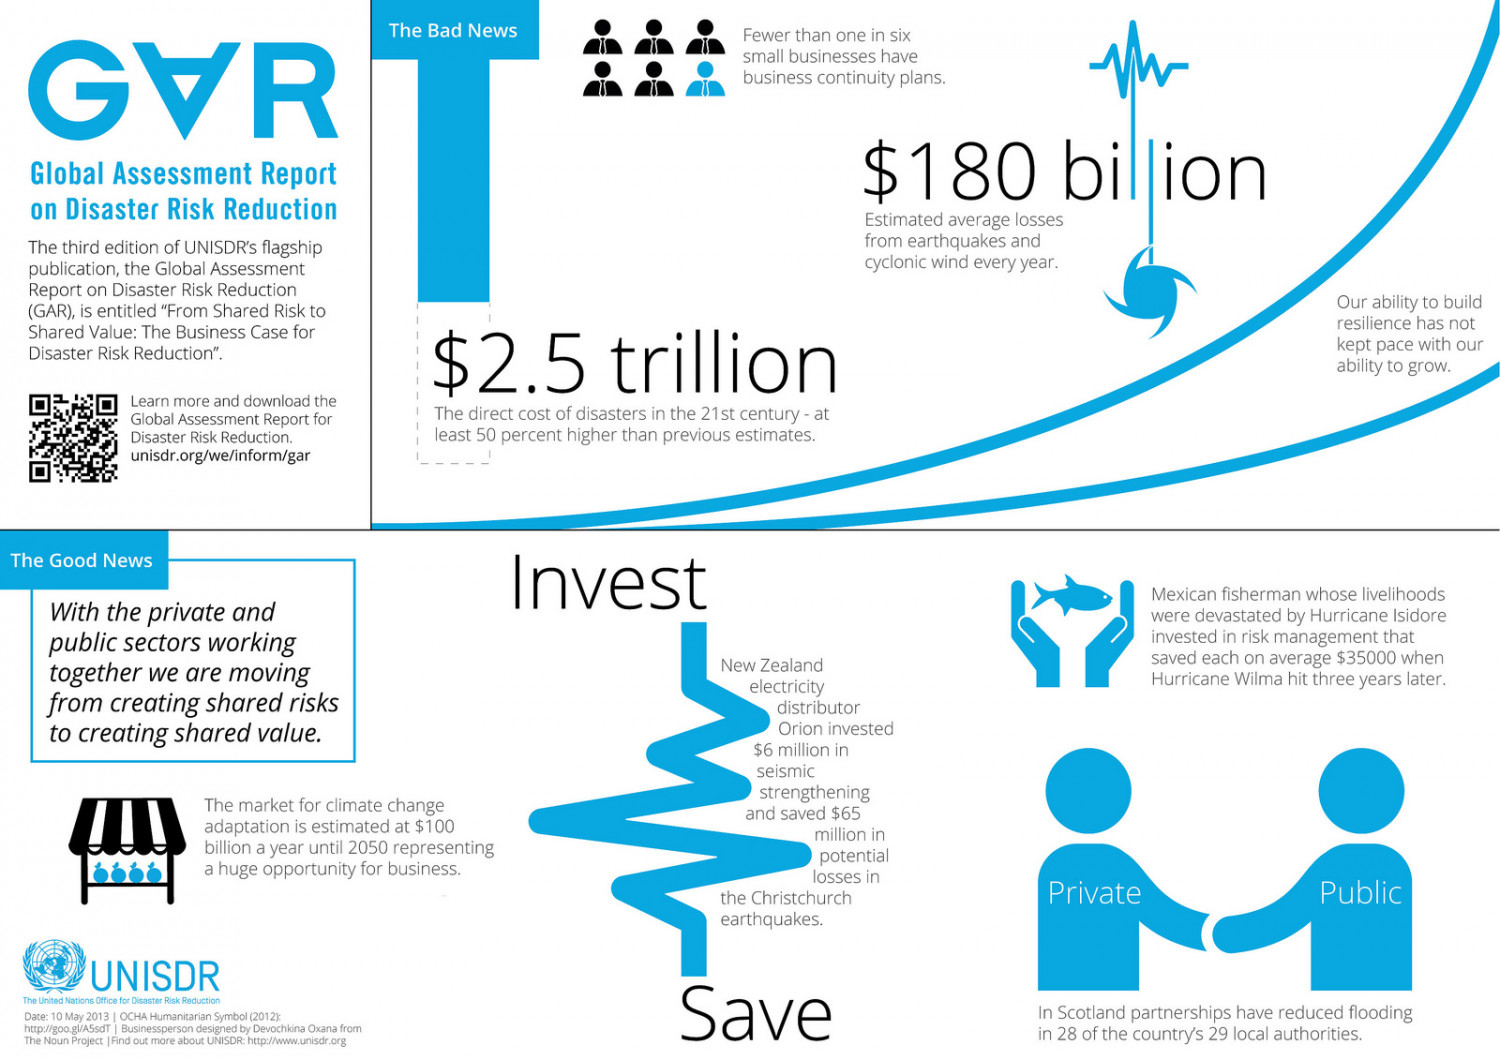 2013 Global Assessment Report for Disaster Risk Reduction Infographic